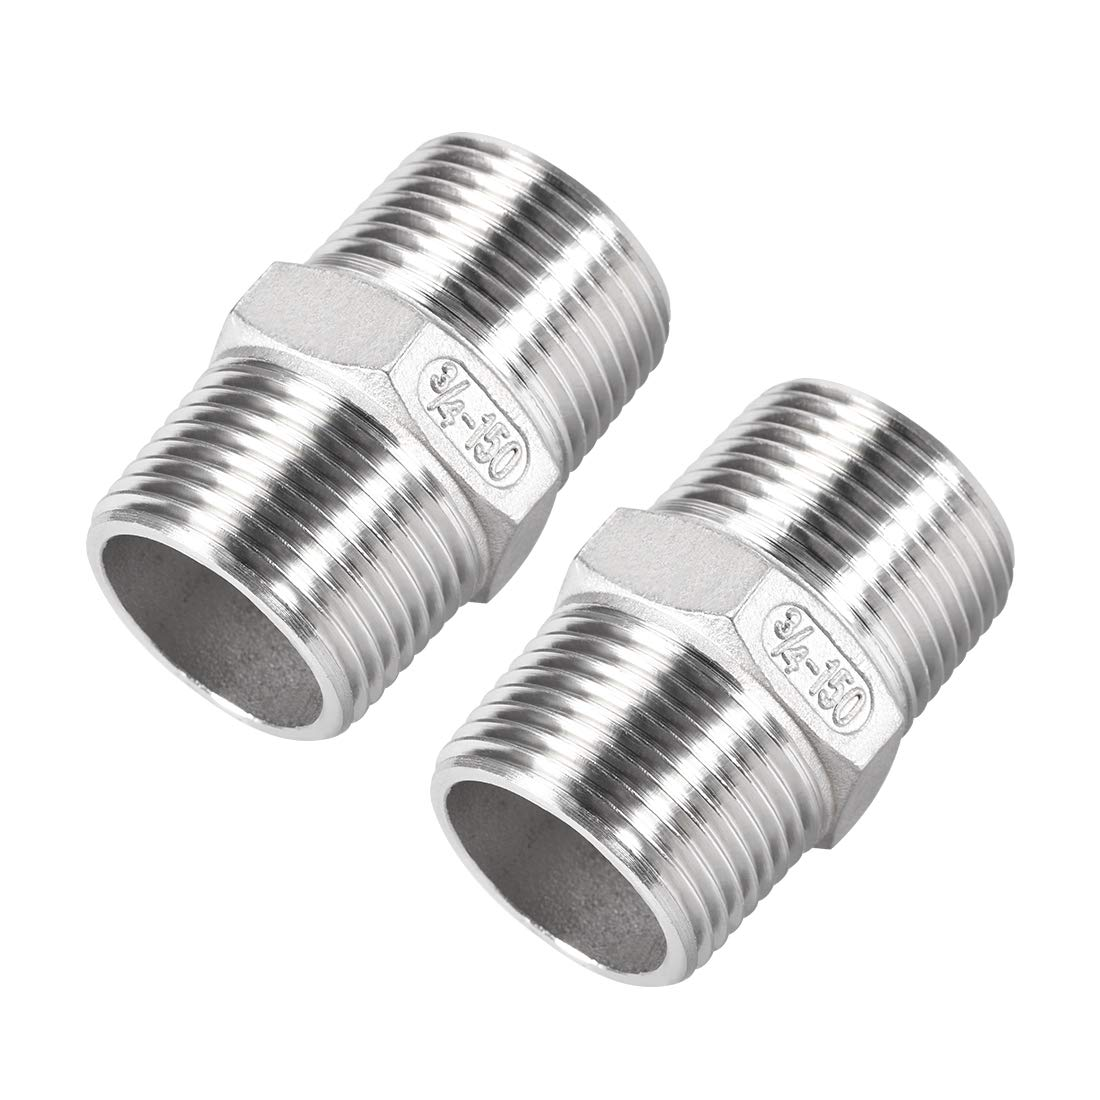 uxcell Stainless Steel 304 Cast Pipe Fittings Coupling Fitting 3//4 x 3//4 G Male